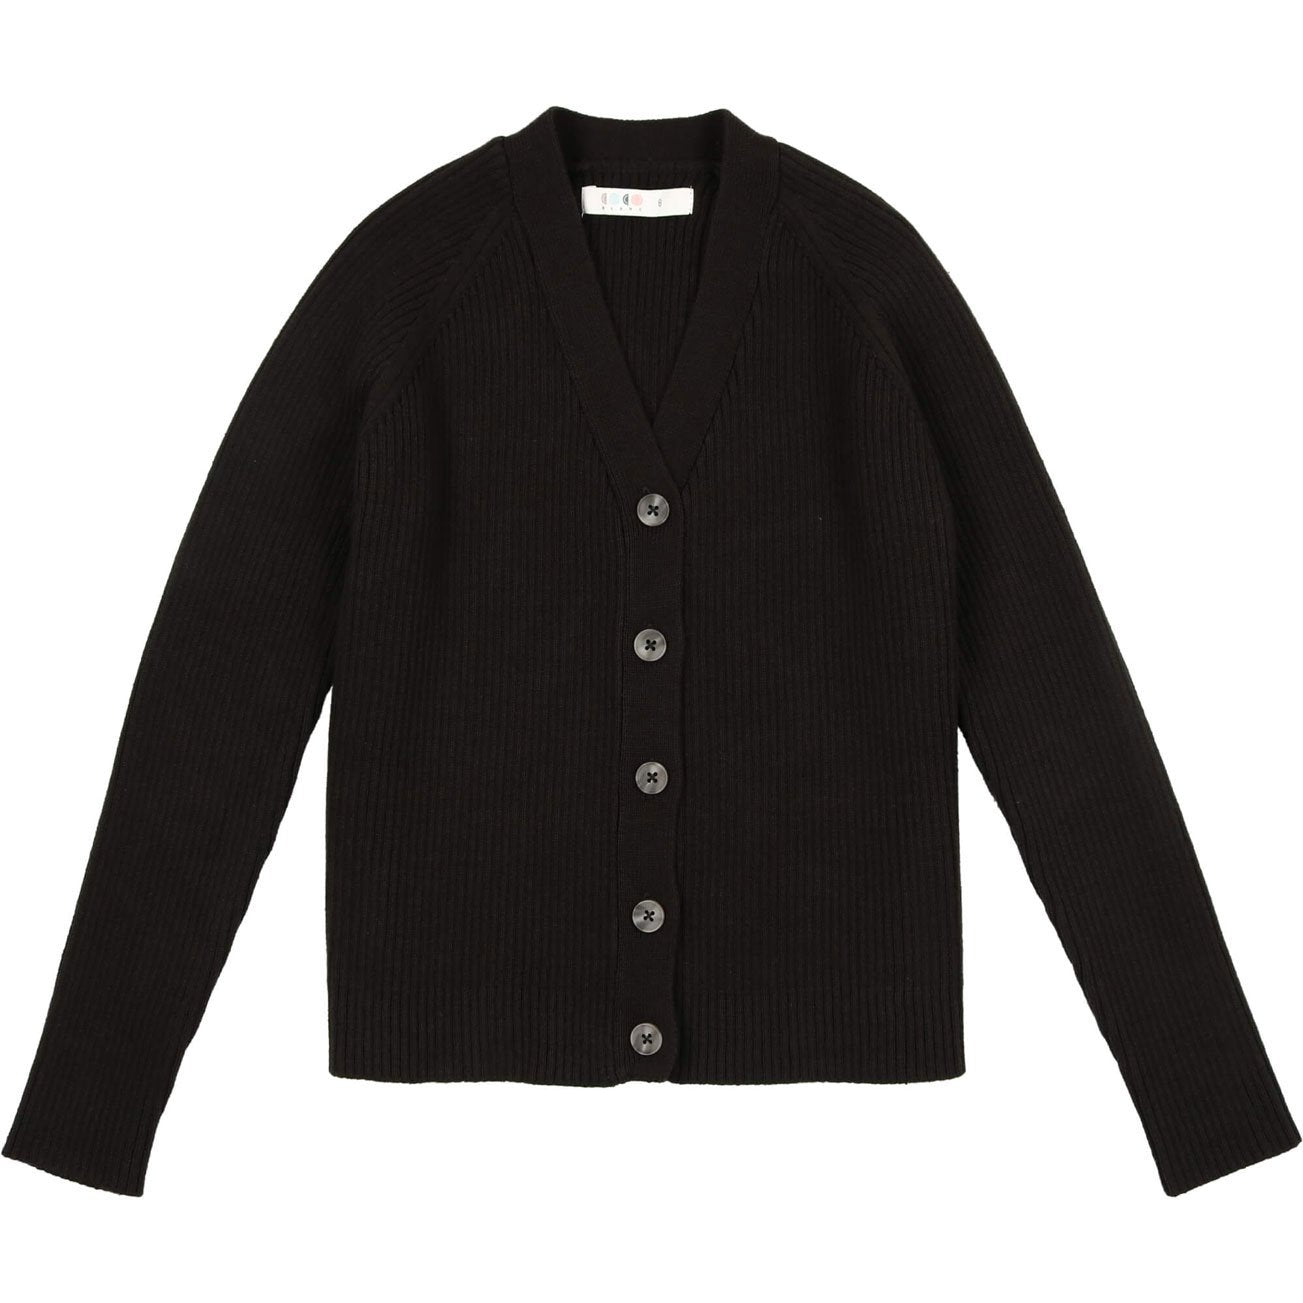 Coco Blanc Black Ribbed Cardigan